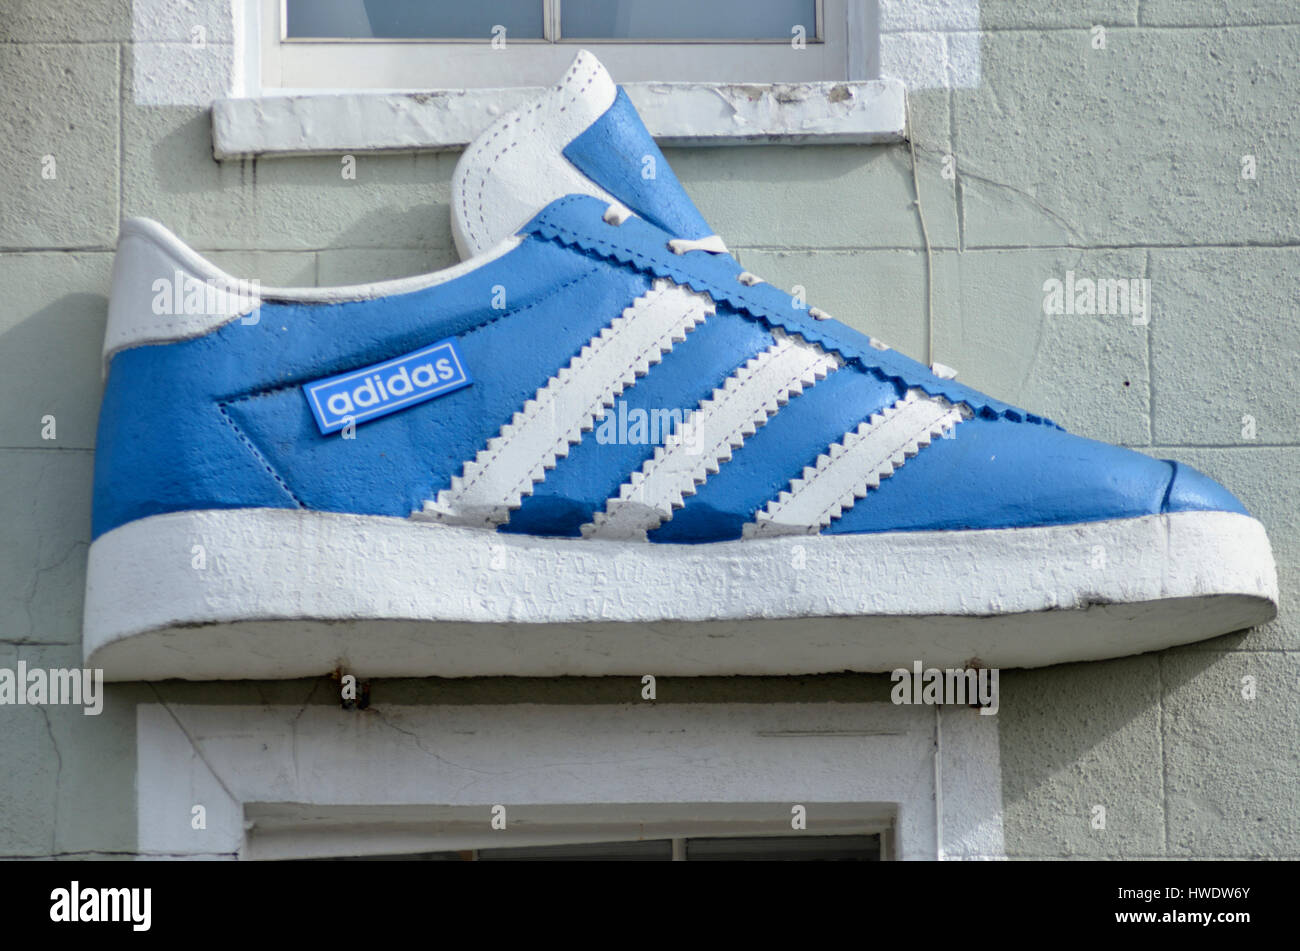 Giant Adidas training shoe on a shop building exterior. - Stock Image